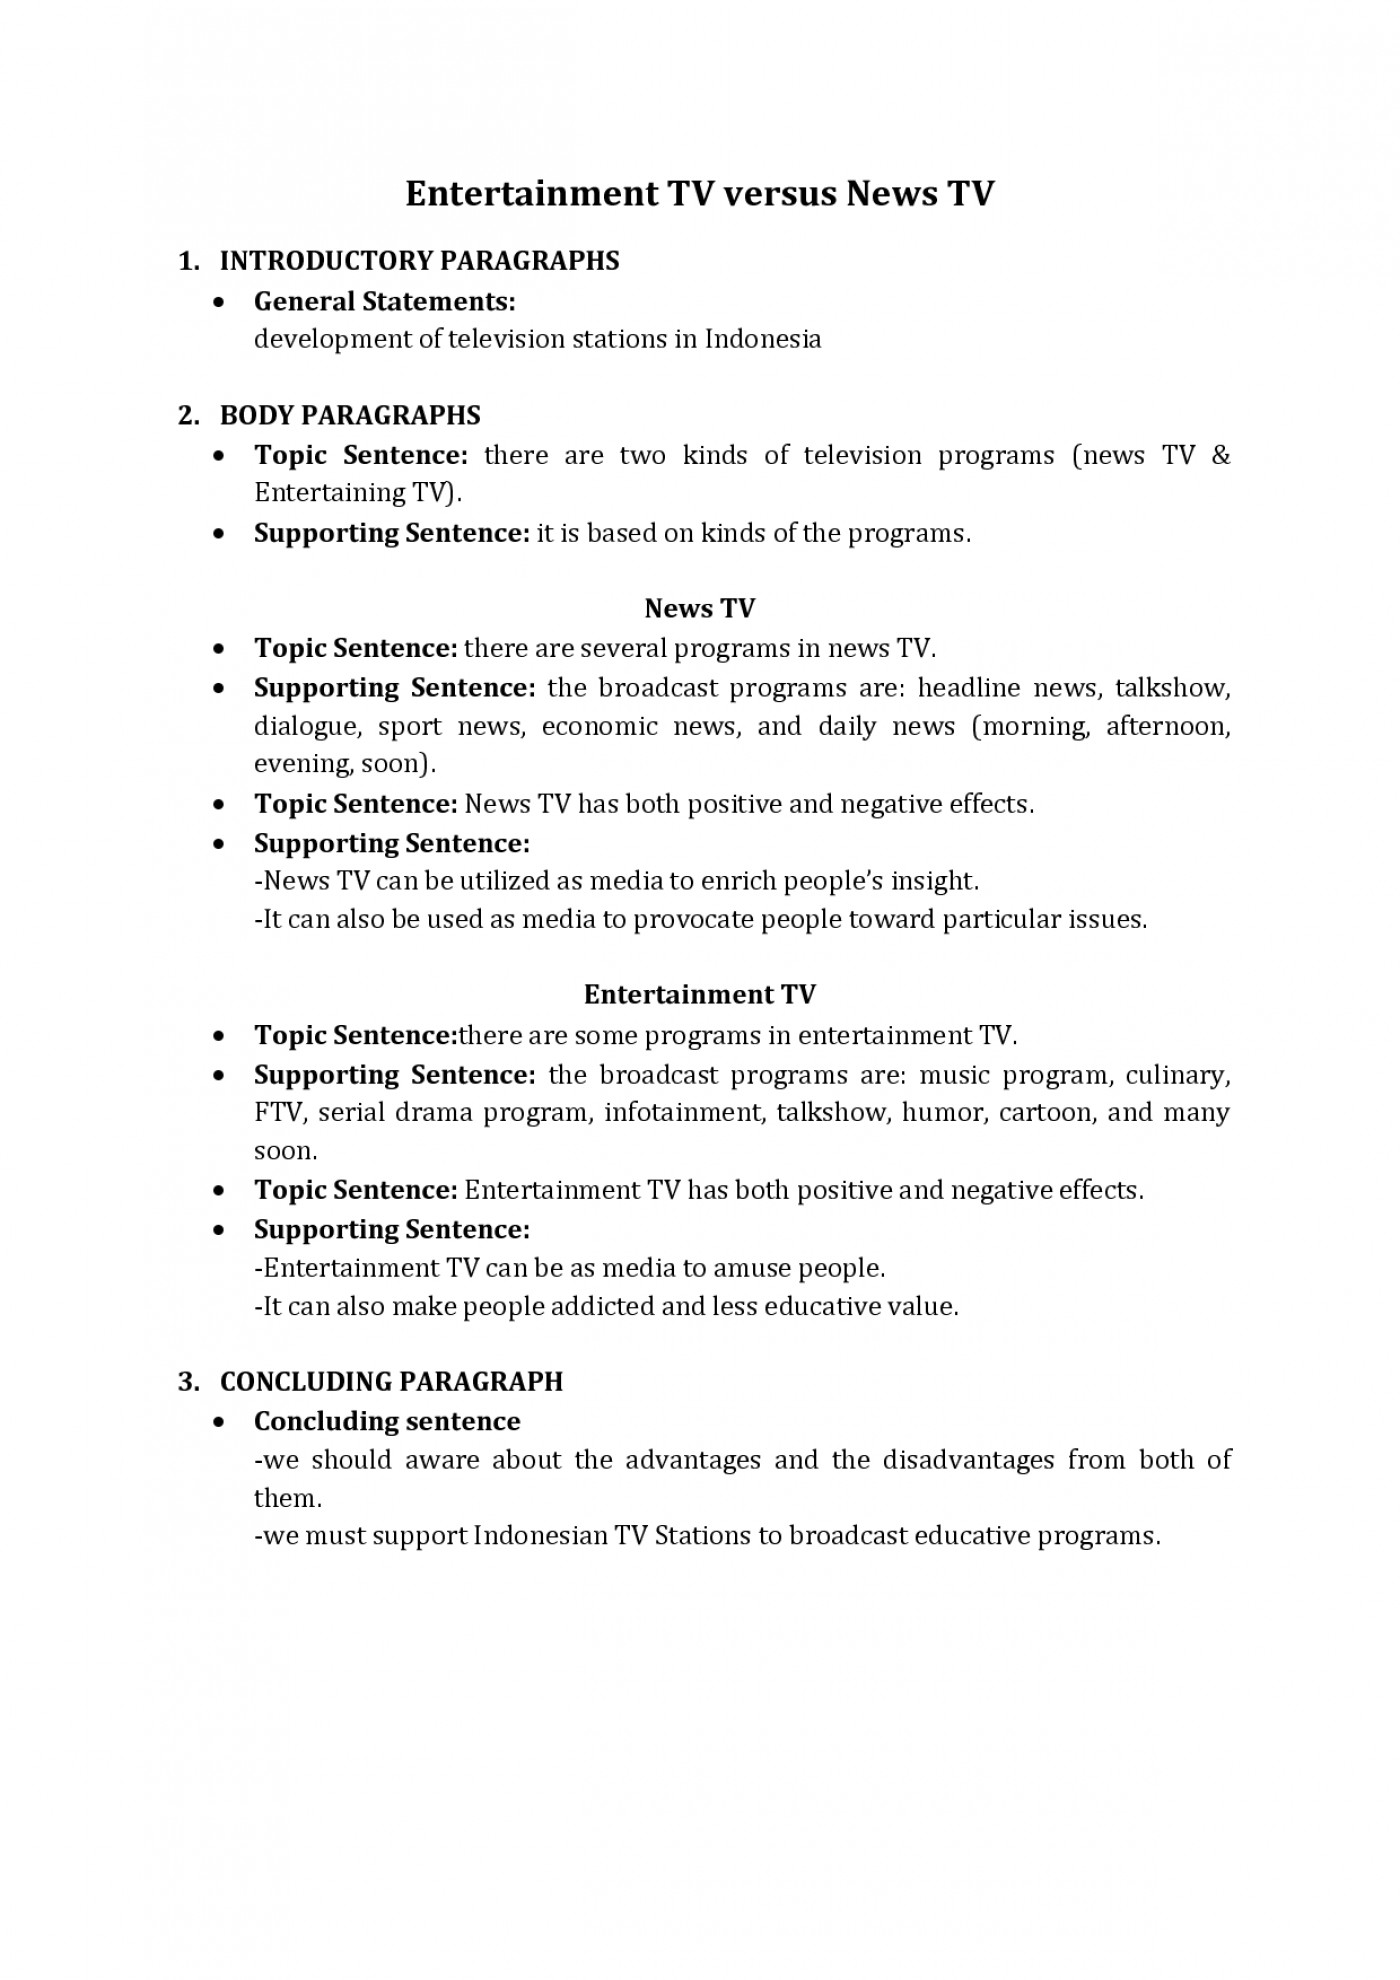 018 Fbunmxinib Outline To Essay Exceptional Format For Definition About Social Media Argumentative Middle School 1400